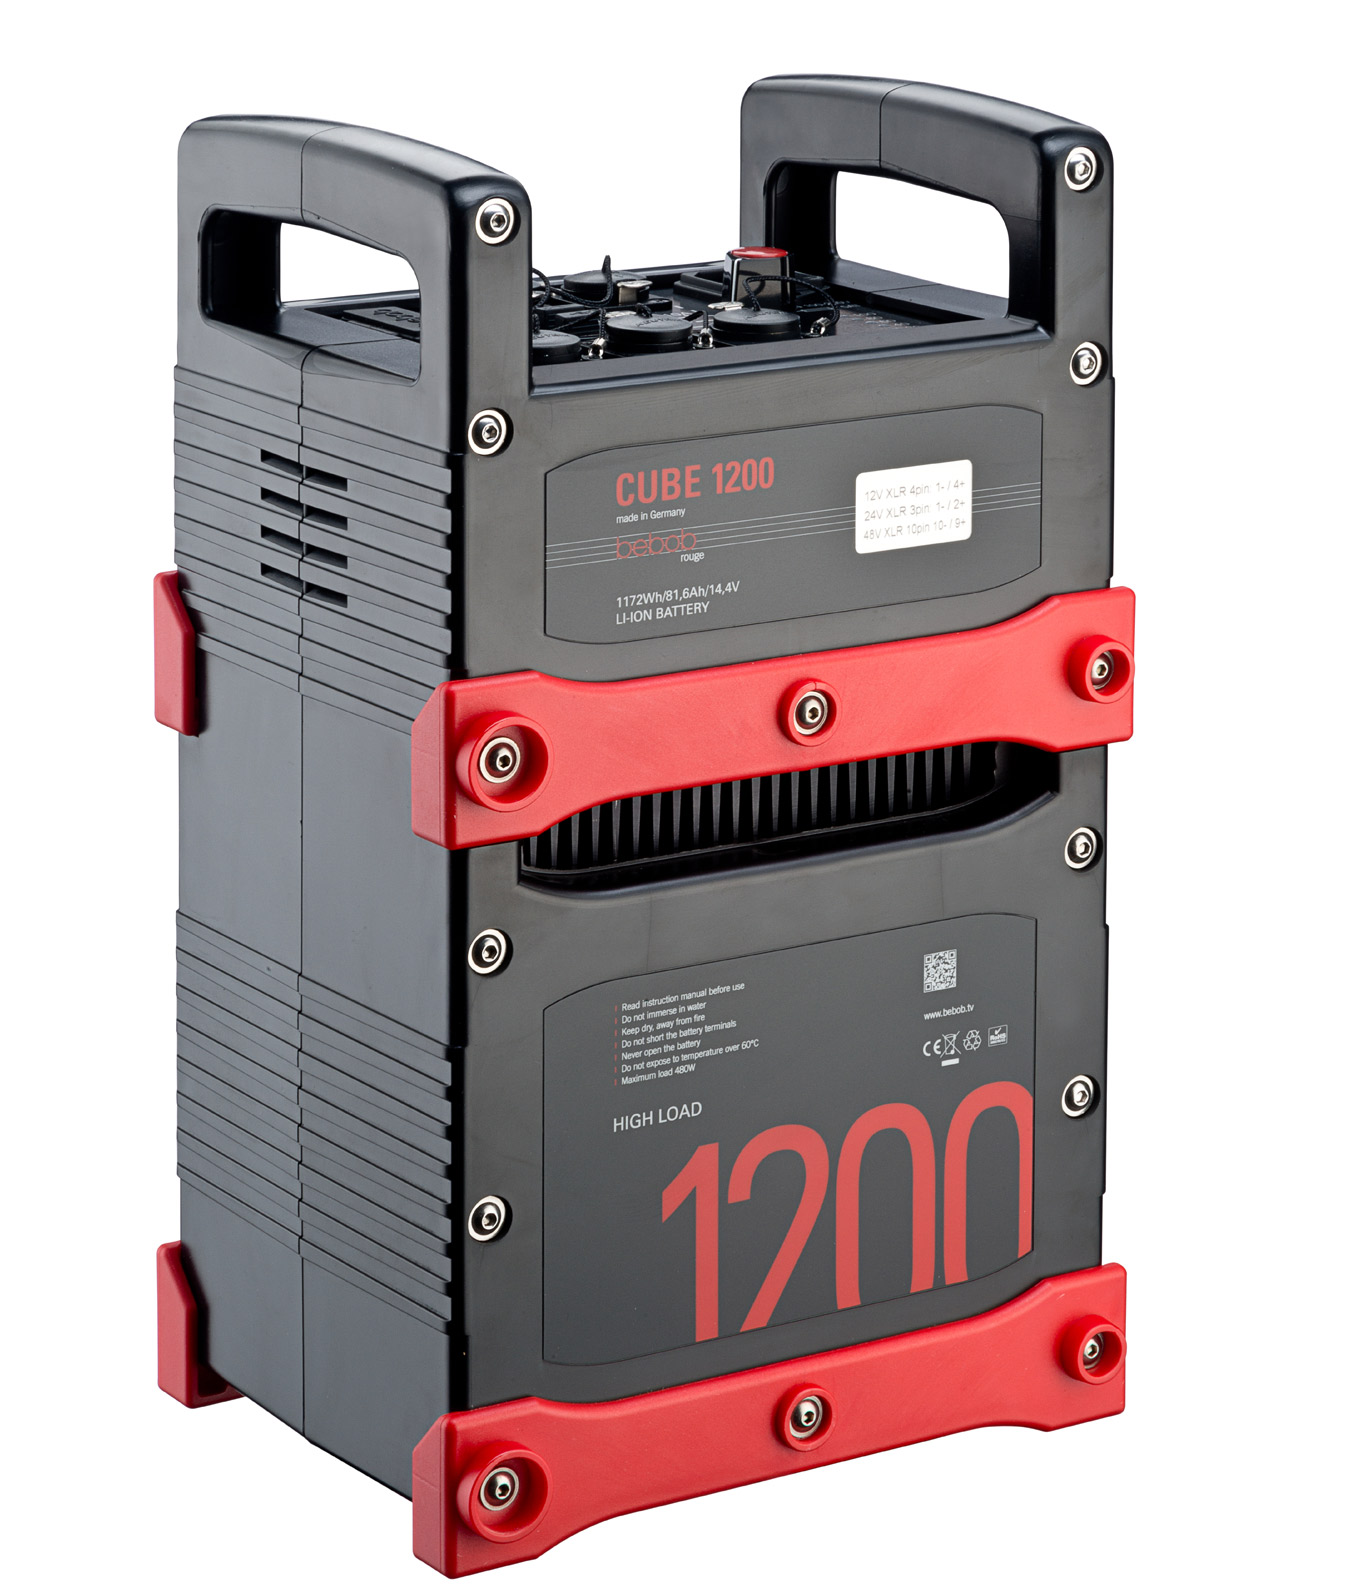 New Bebob CUBE 1200 battery with huge capacity of 1200 Wh